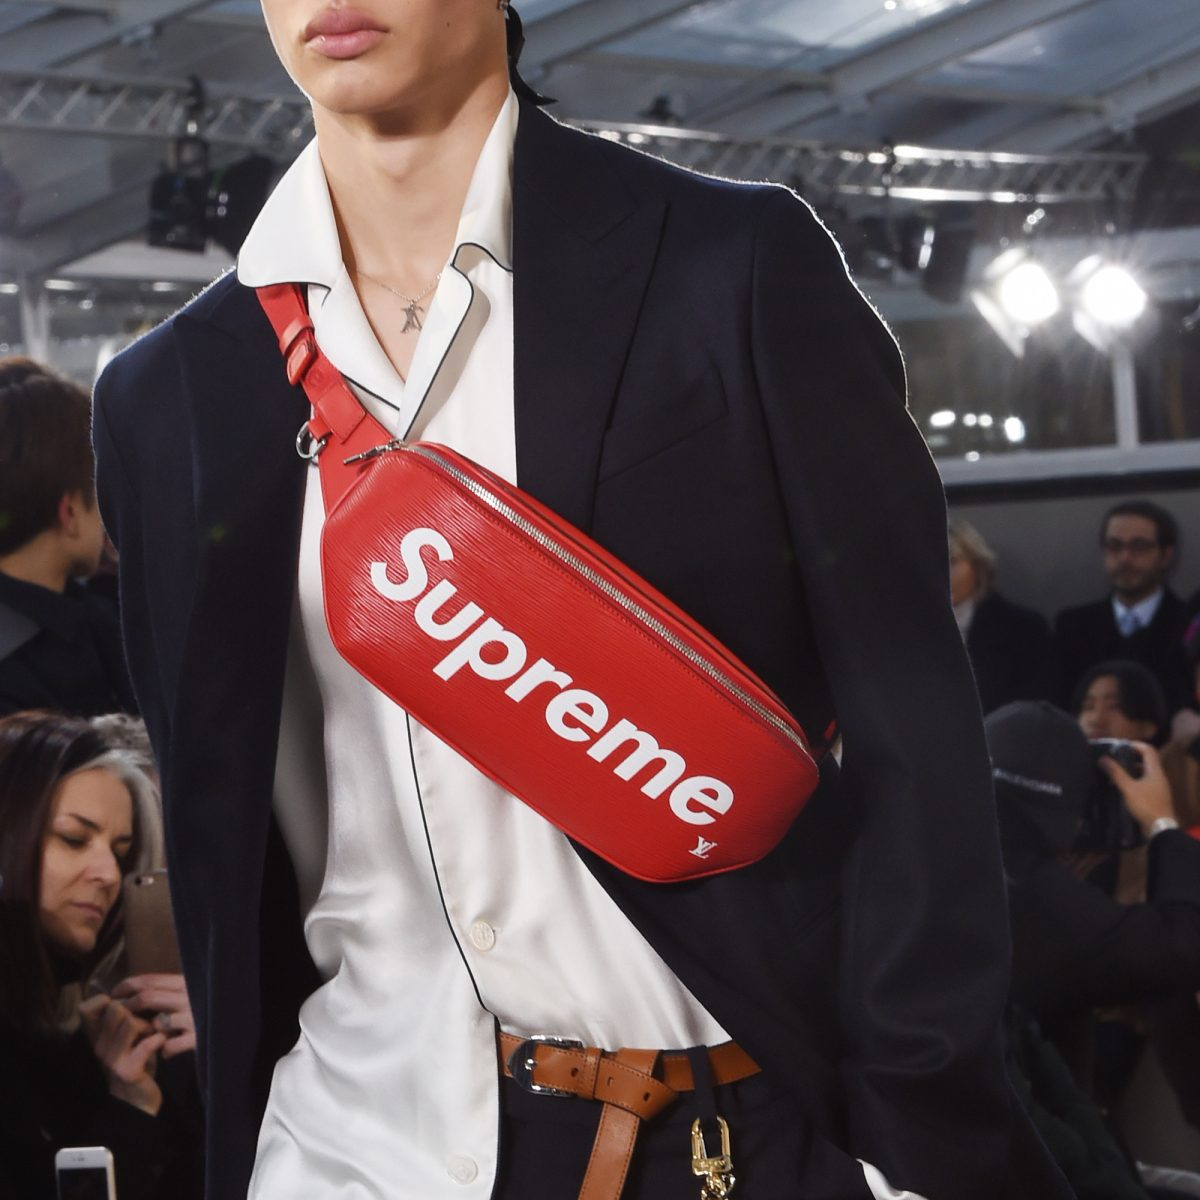 01860e356 Trend to try: Cross-body bags that are as cool as LV x Supreme's